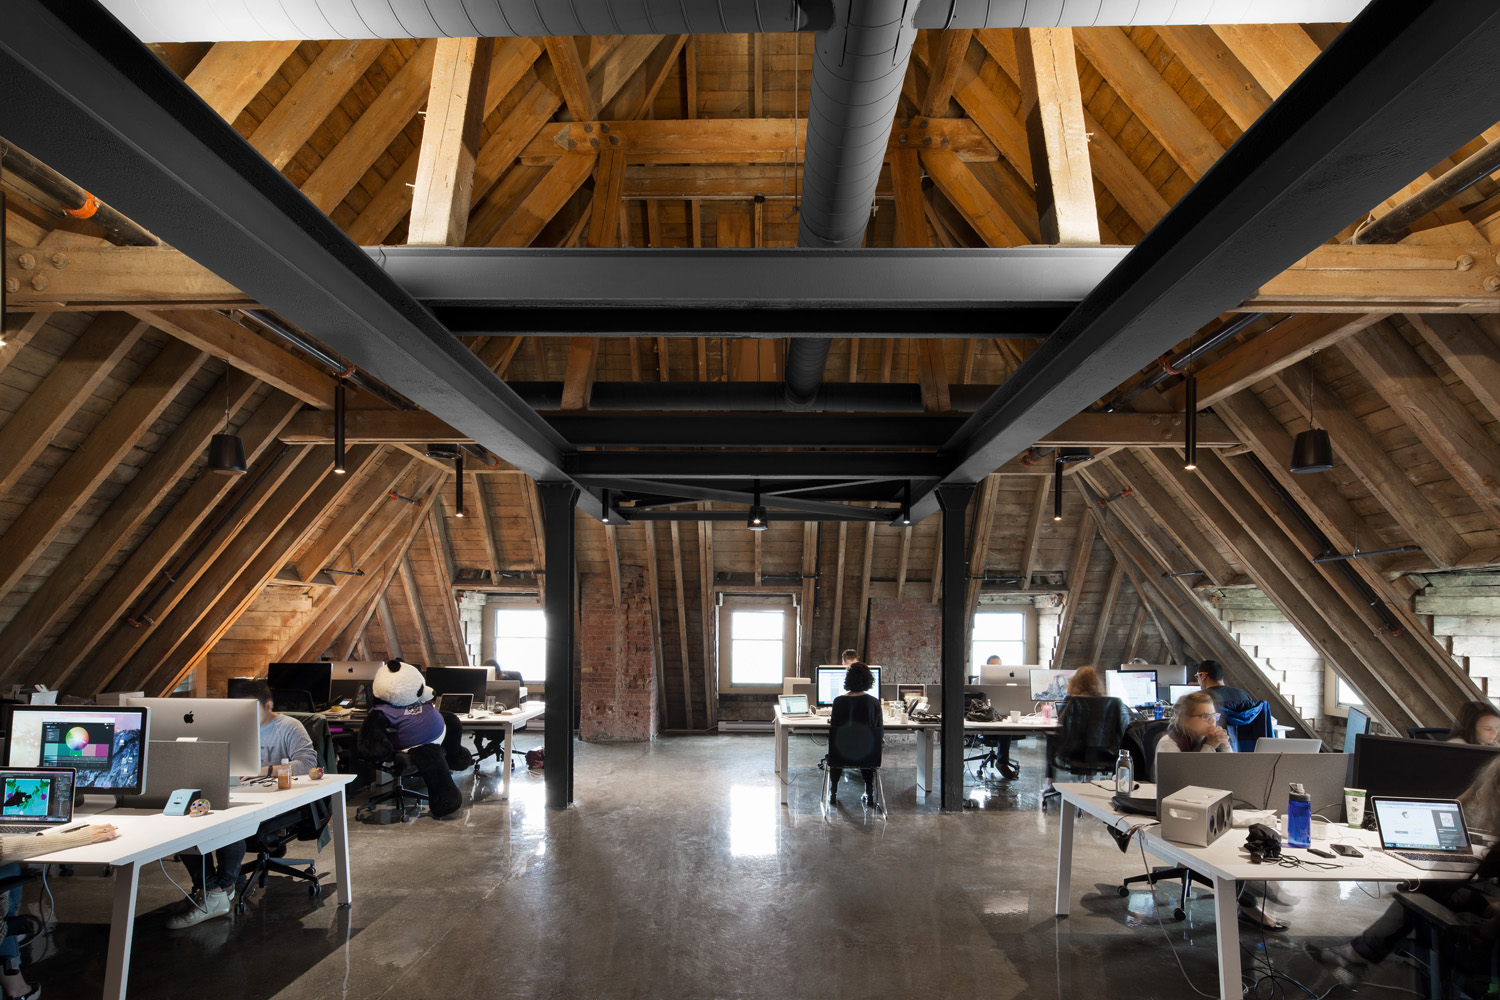 © Adrian Williams courtesy ACDF Architecture ACDF Architecture's design has restored the soul of the building, uncovering and highlighting its red brick and gray stone walls, wooden beams and steel structures.